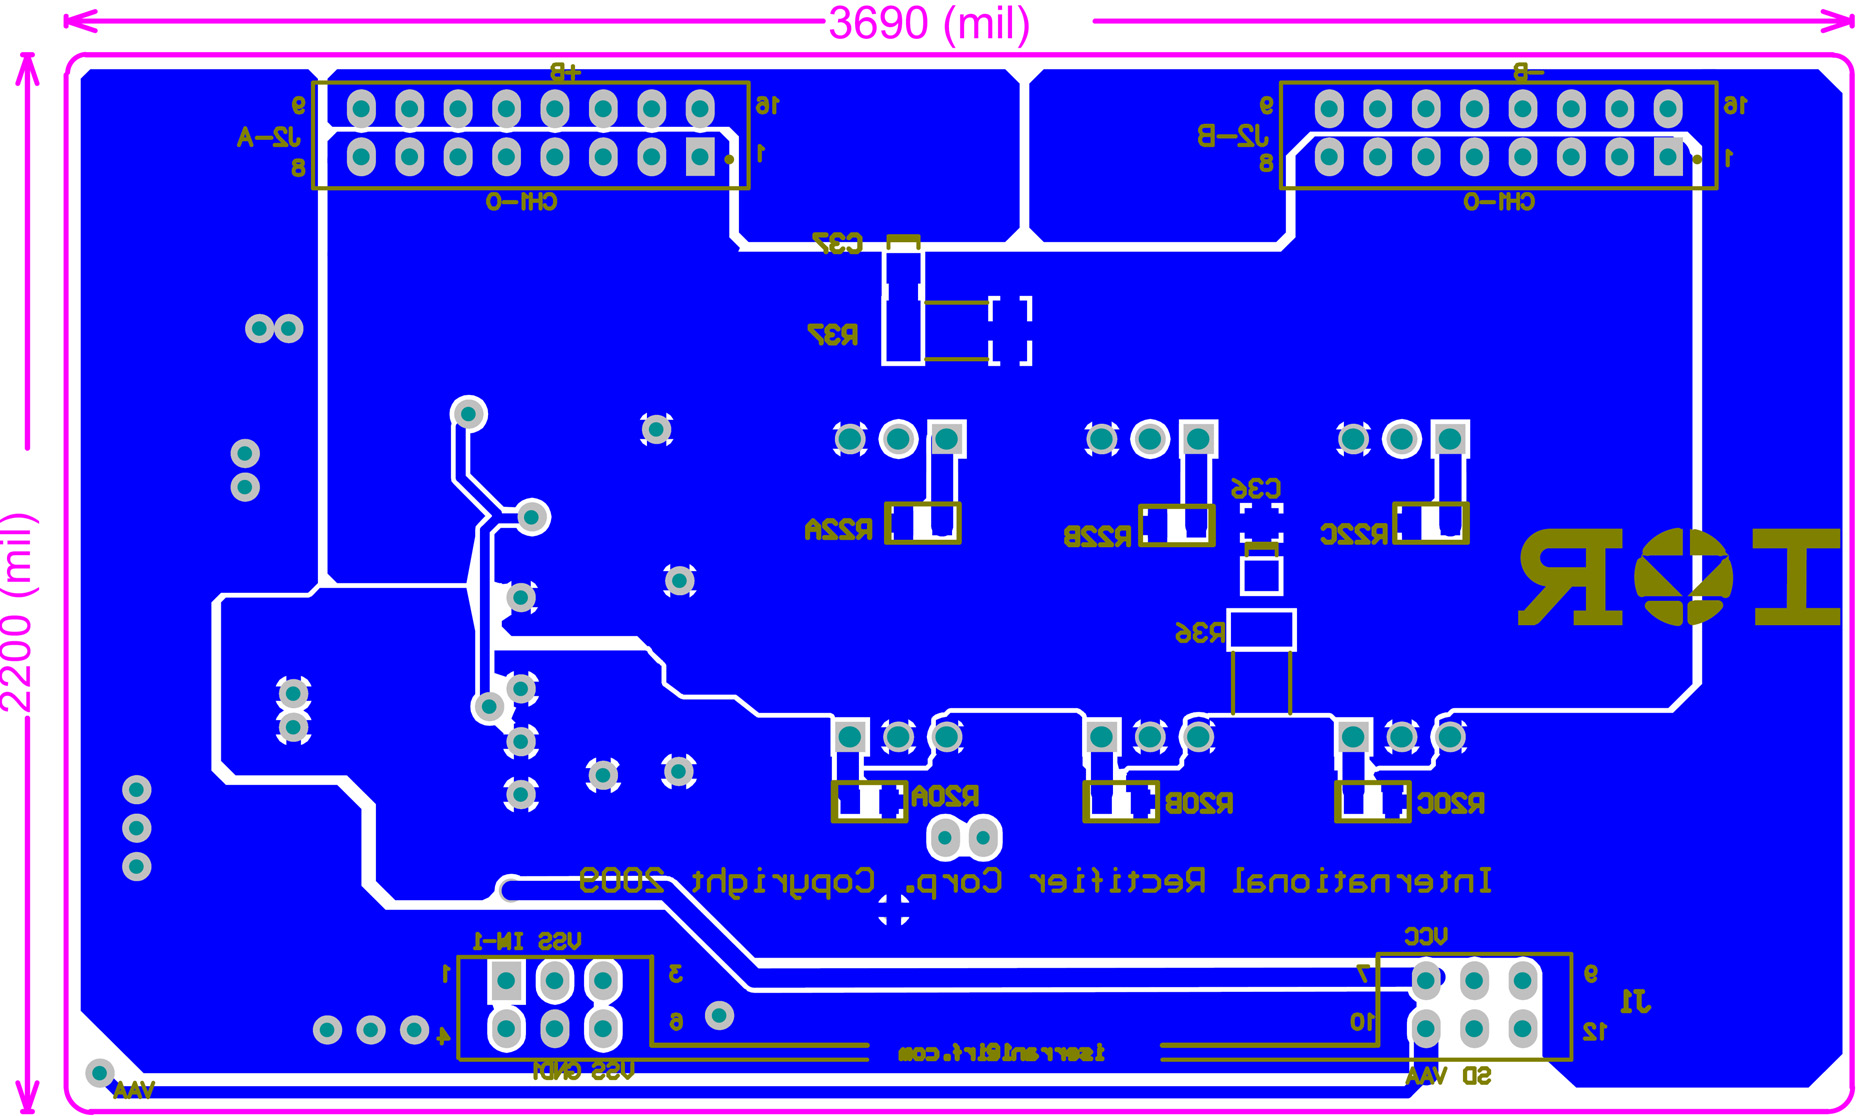 Iraudamp Kw 2 Single Channel Class D Audio Power Amplifier Using Circuit Dynamic With Ic Dmos Tda7294 Bridge Figure 27 Iraudamp9 Daughter Board Pcb Top Overlay View 28